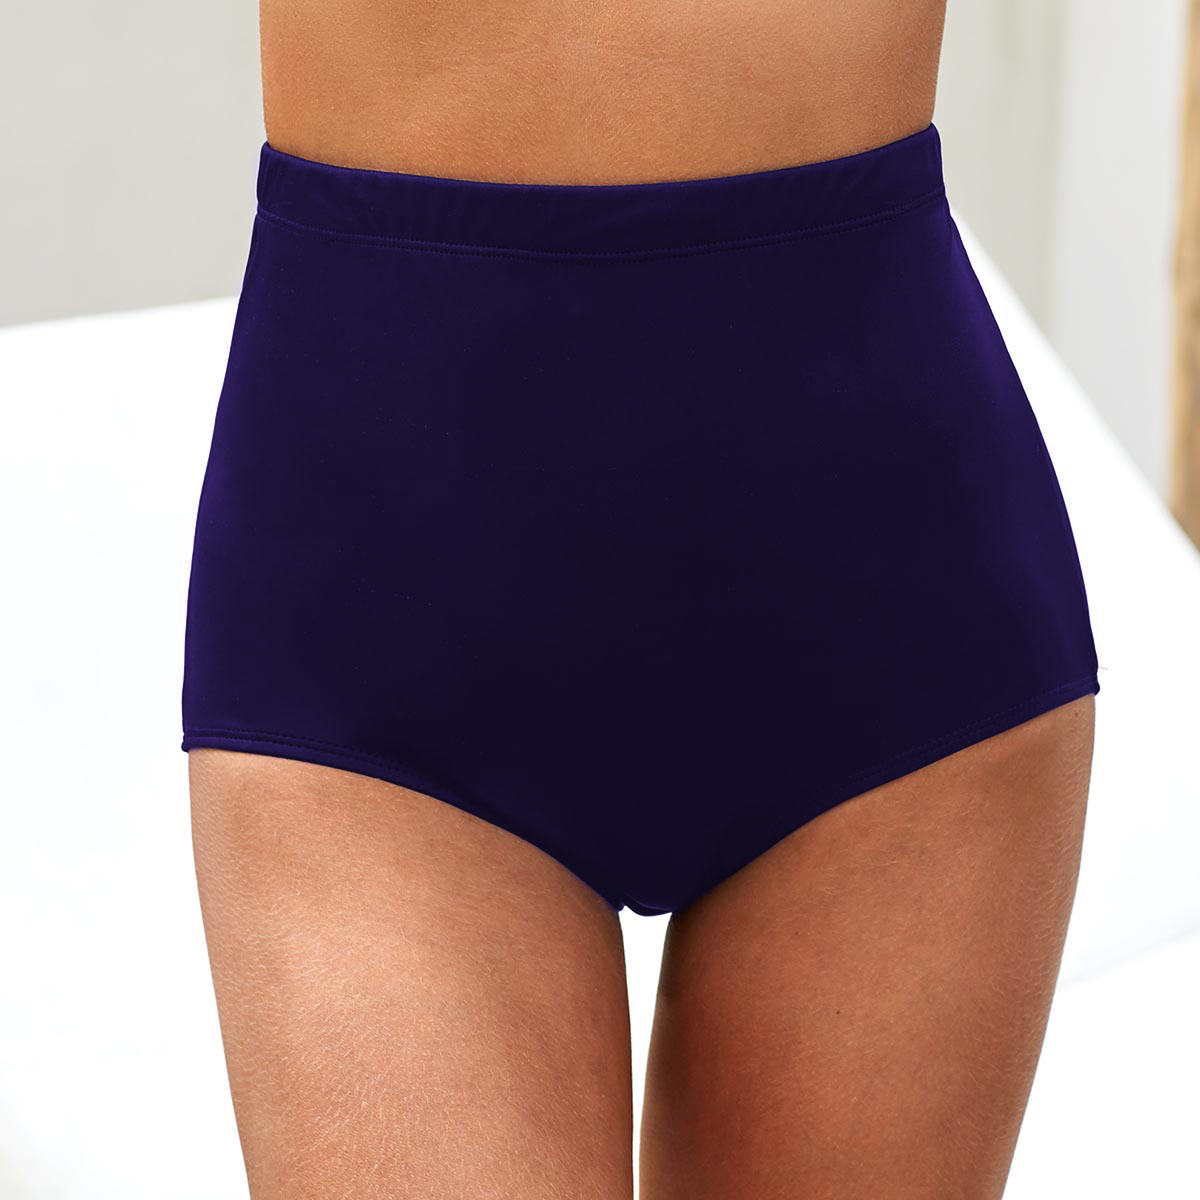 ROTITA Navy Blue High Waist Swimwear Panty